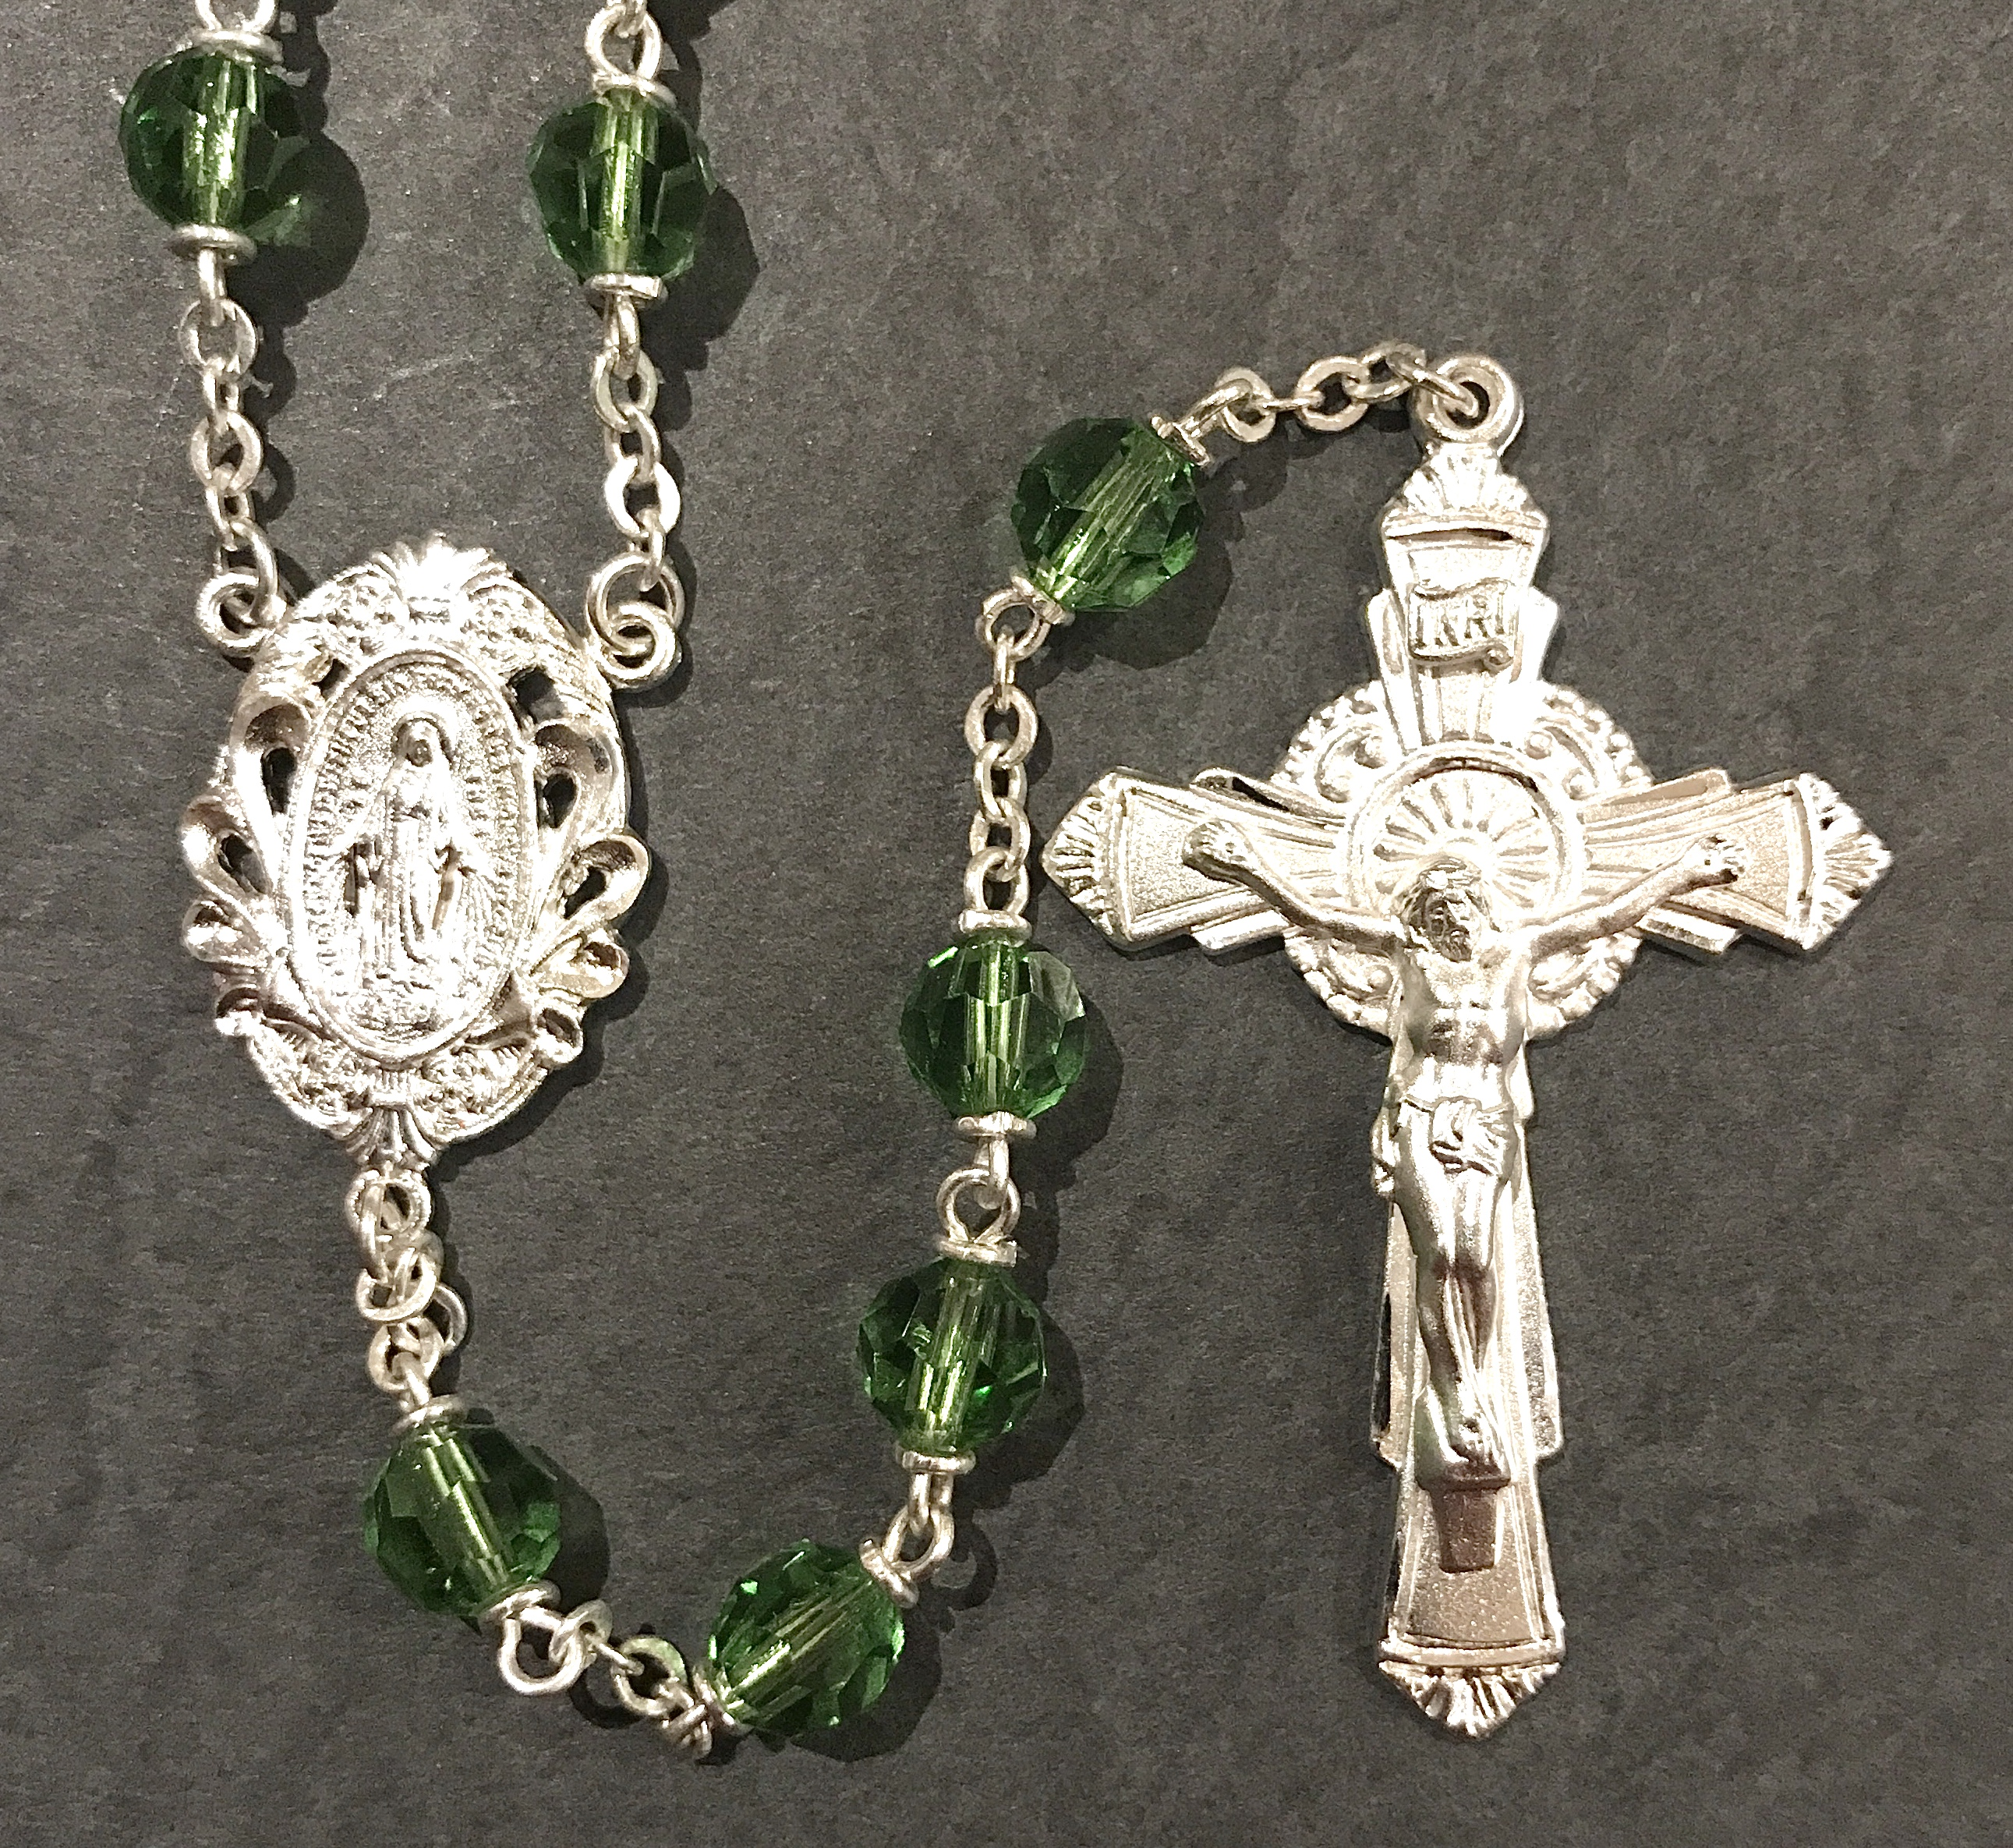 6mm PERIDOT TIN CUT LOC-LINK ROSARY WITH STERLING SILVER PLATED CRUCIFIX, CENTER, WIRE, CHAIN GIFT BOXED